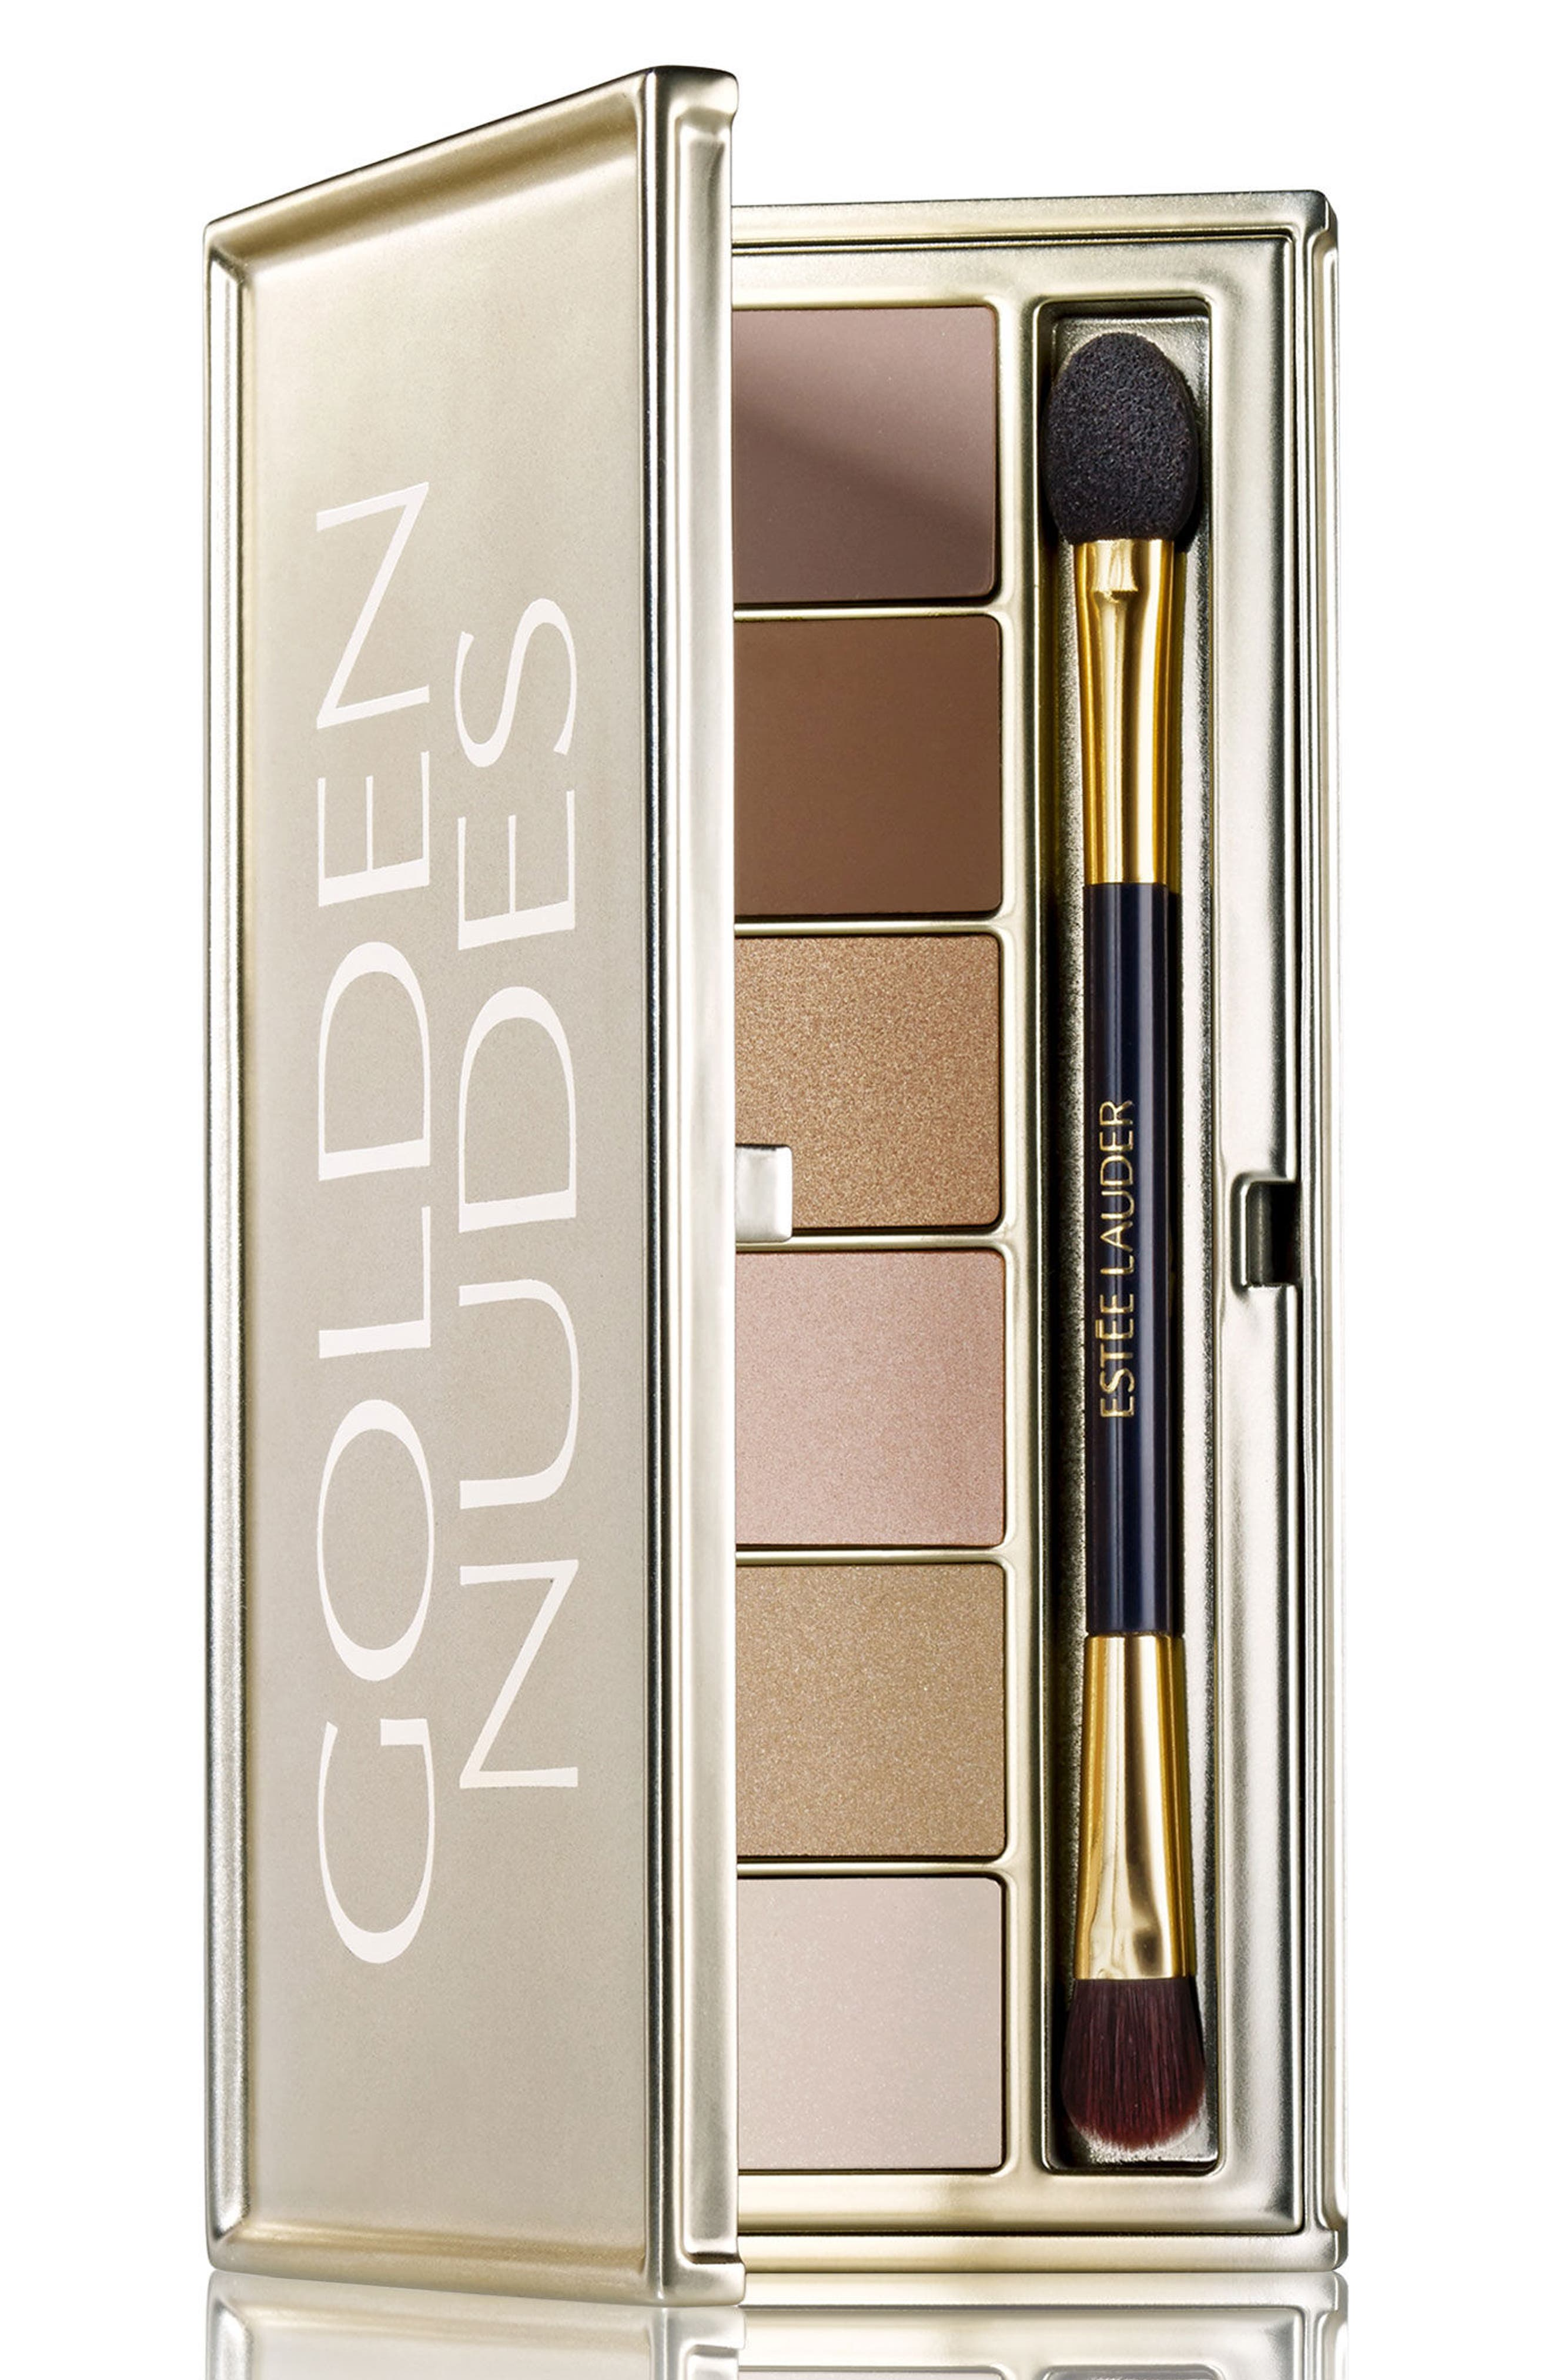 Golden Nudes Eyeshadow Palette,                             Main thumbnail 1, color,                             000